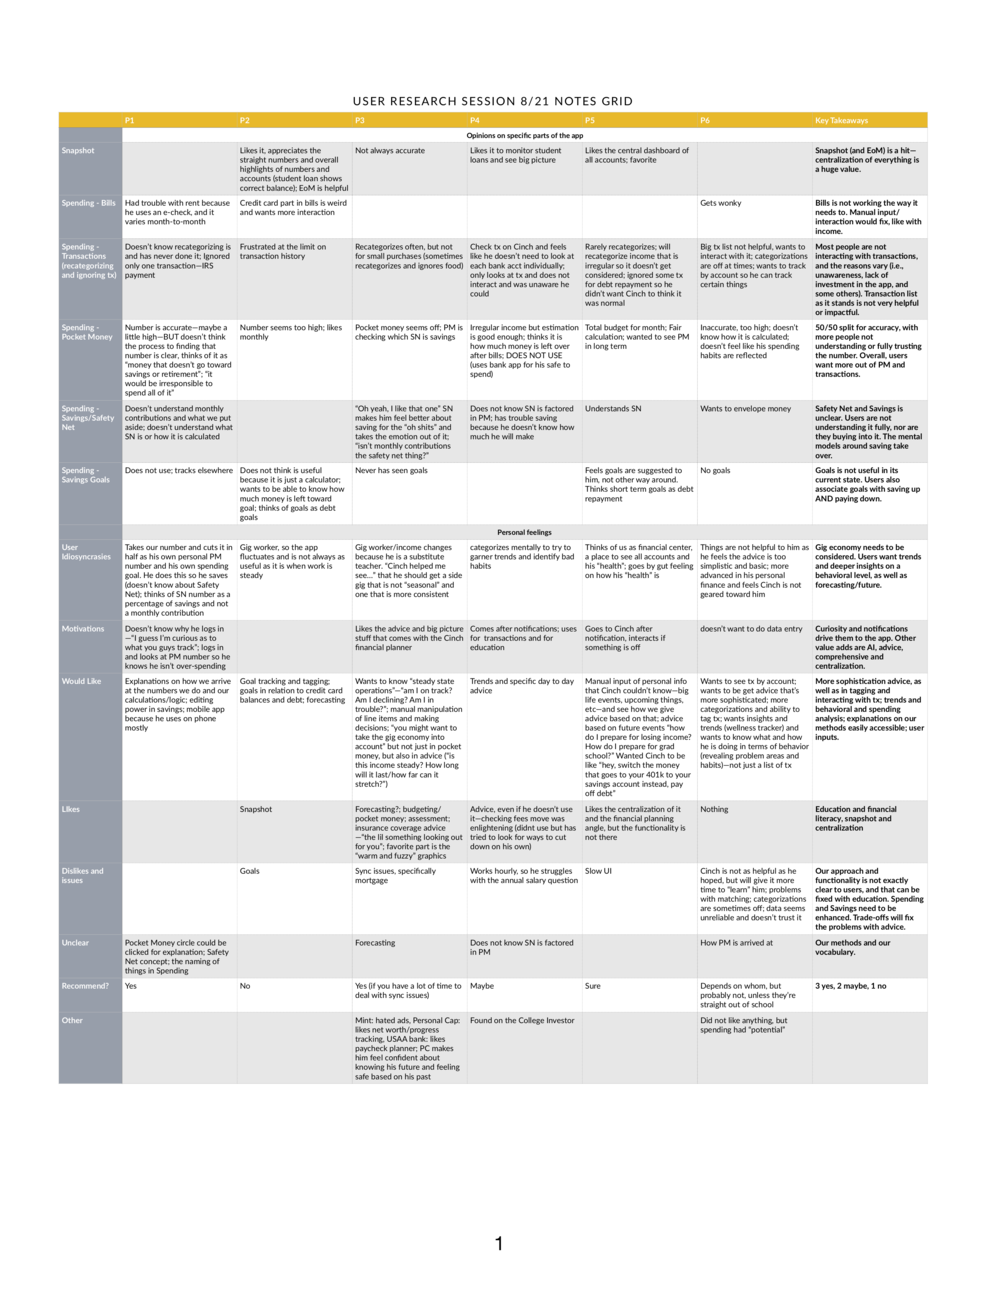 Notes Grid